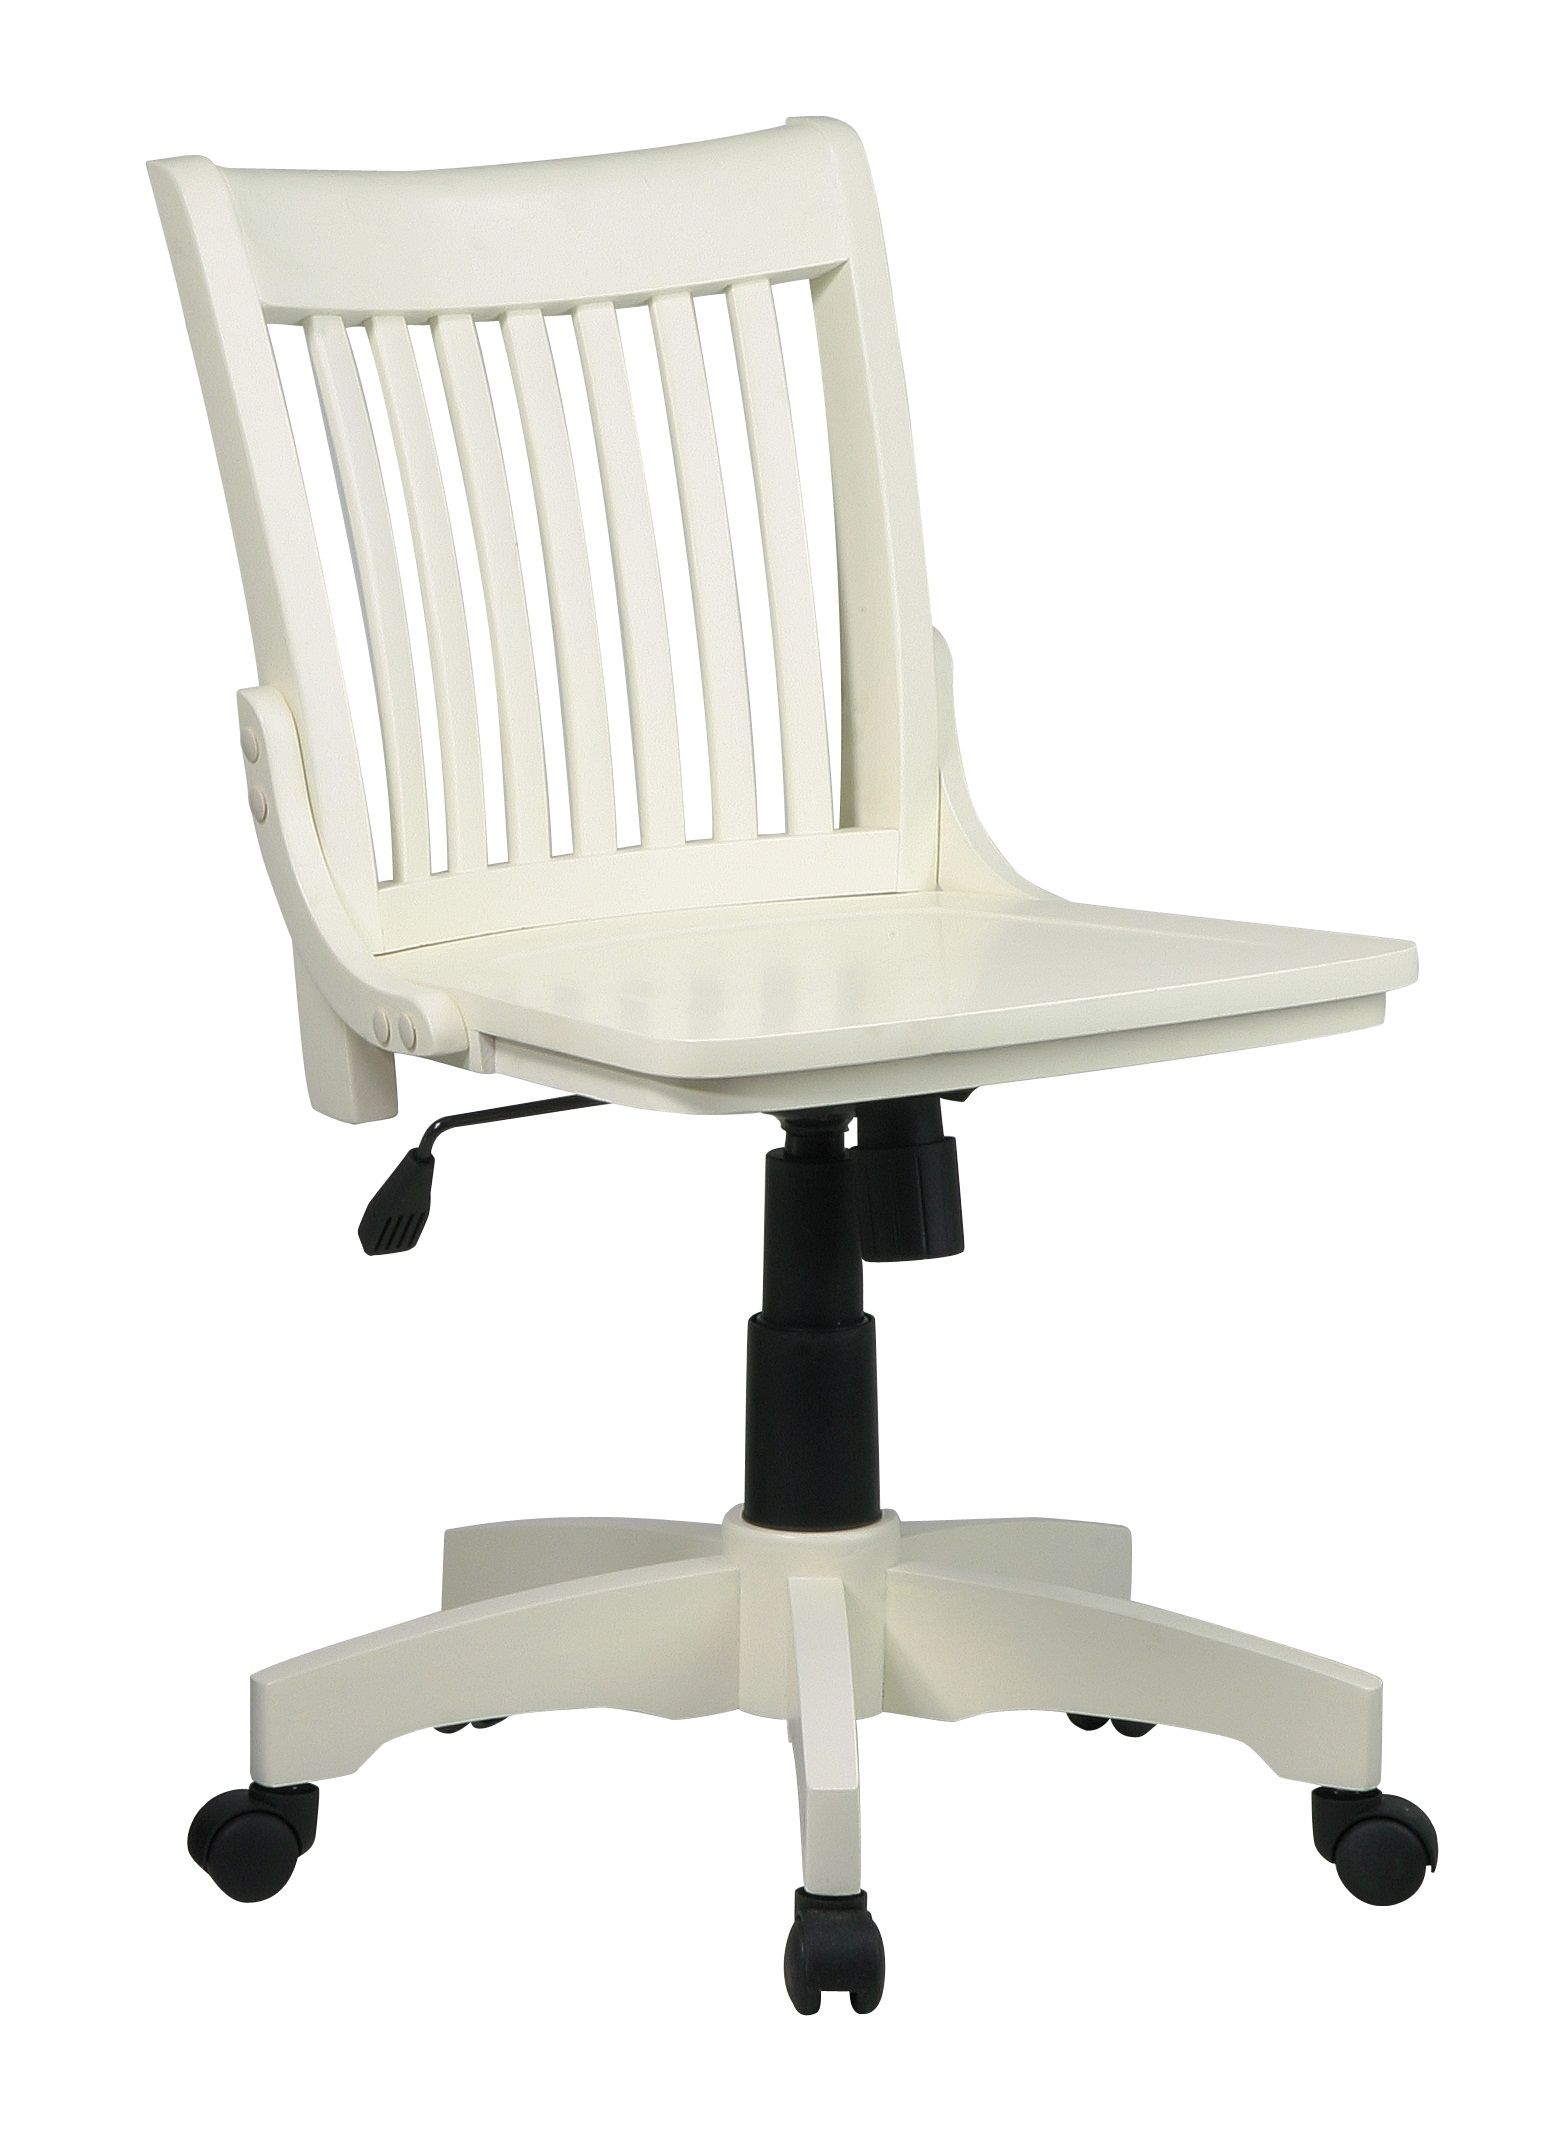 Antique White Desk With Chair - Antique White Desk With Chair Http://devintavern.com Pinterest